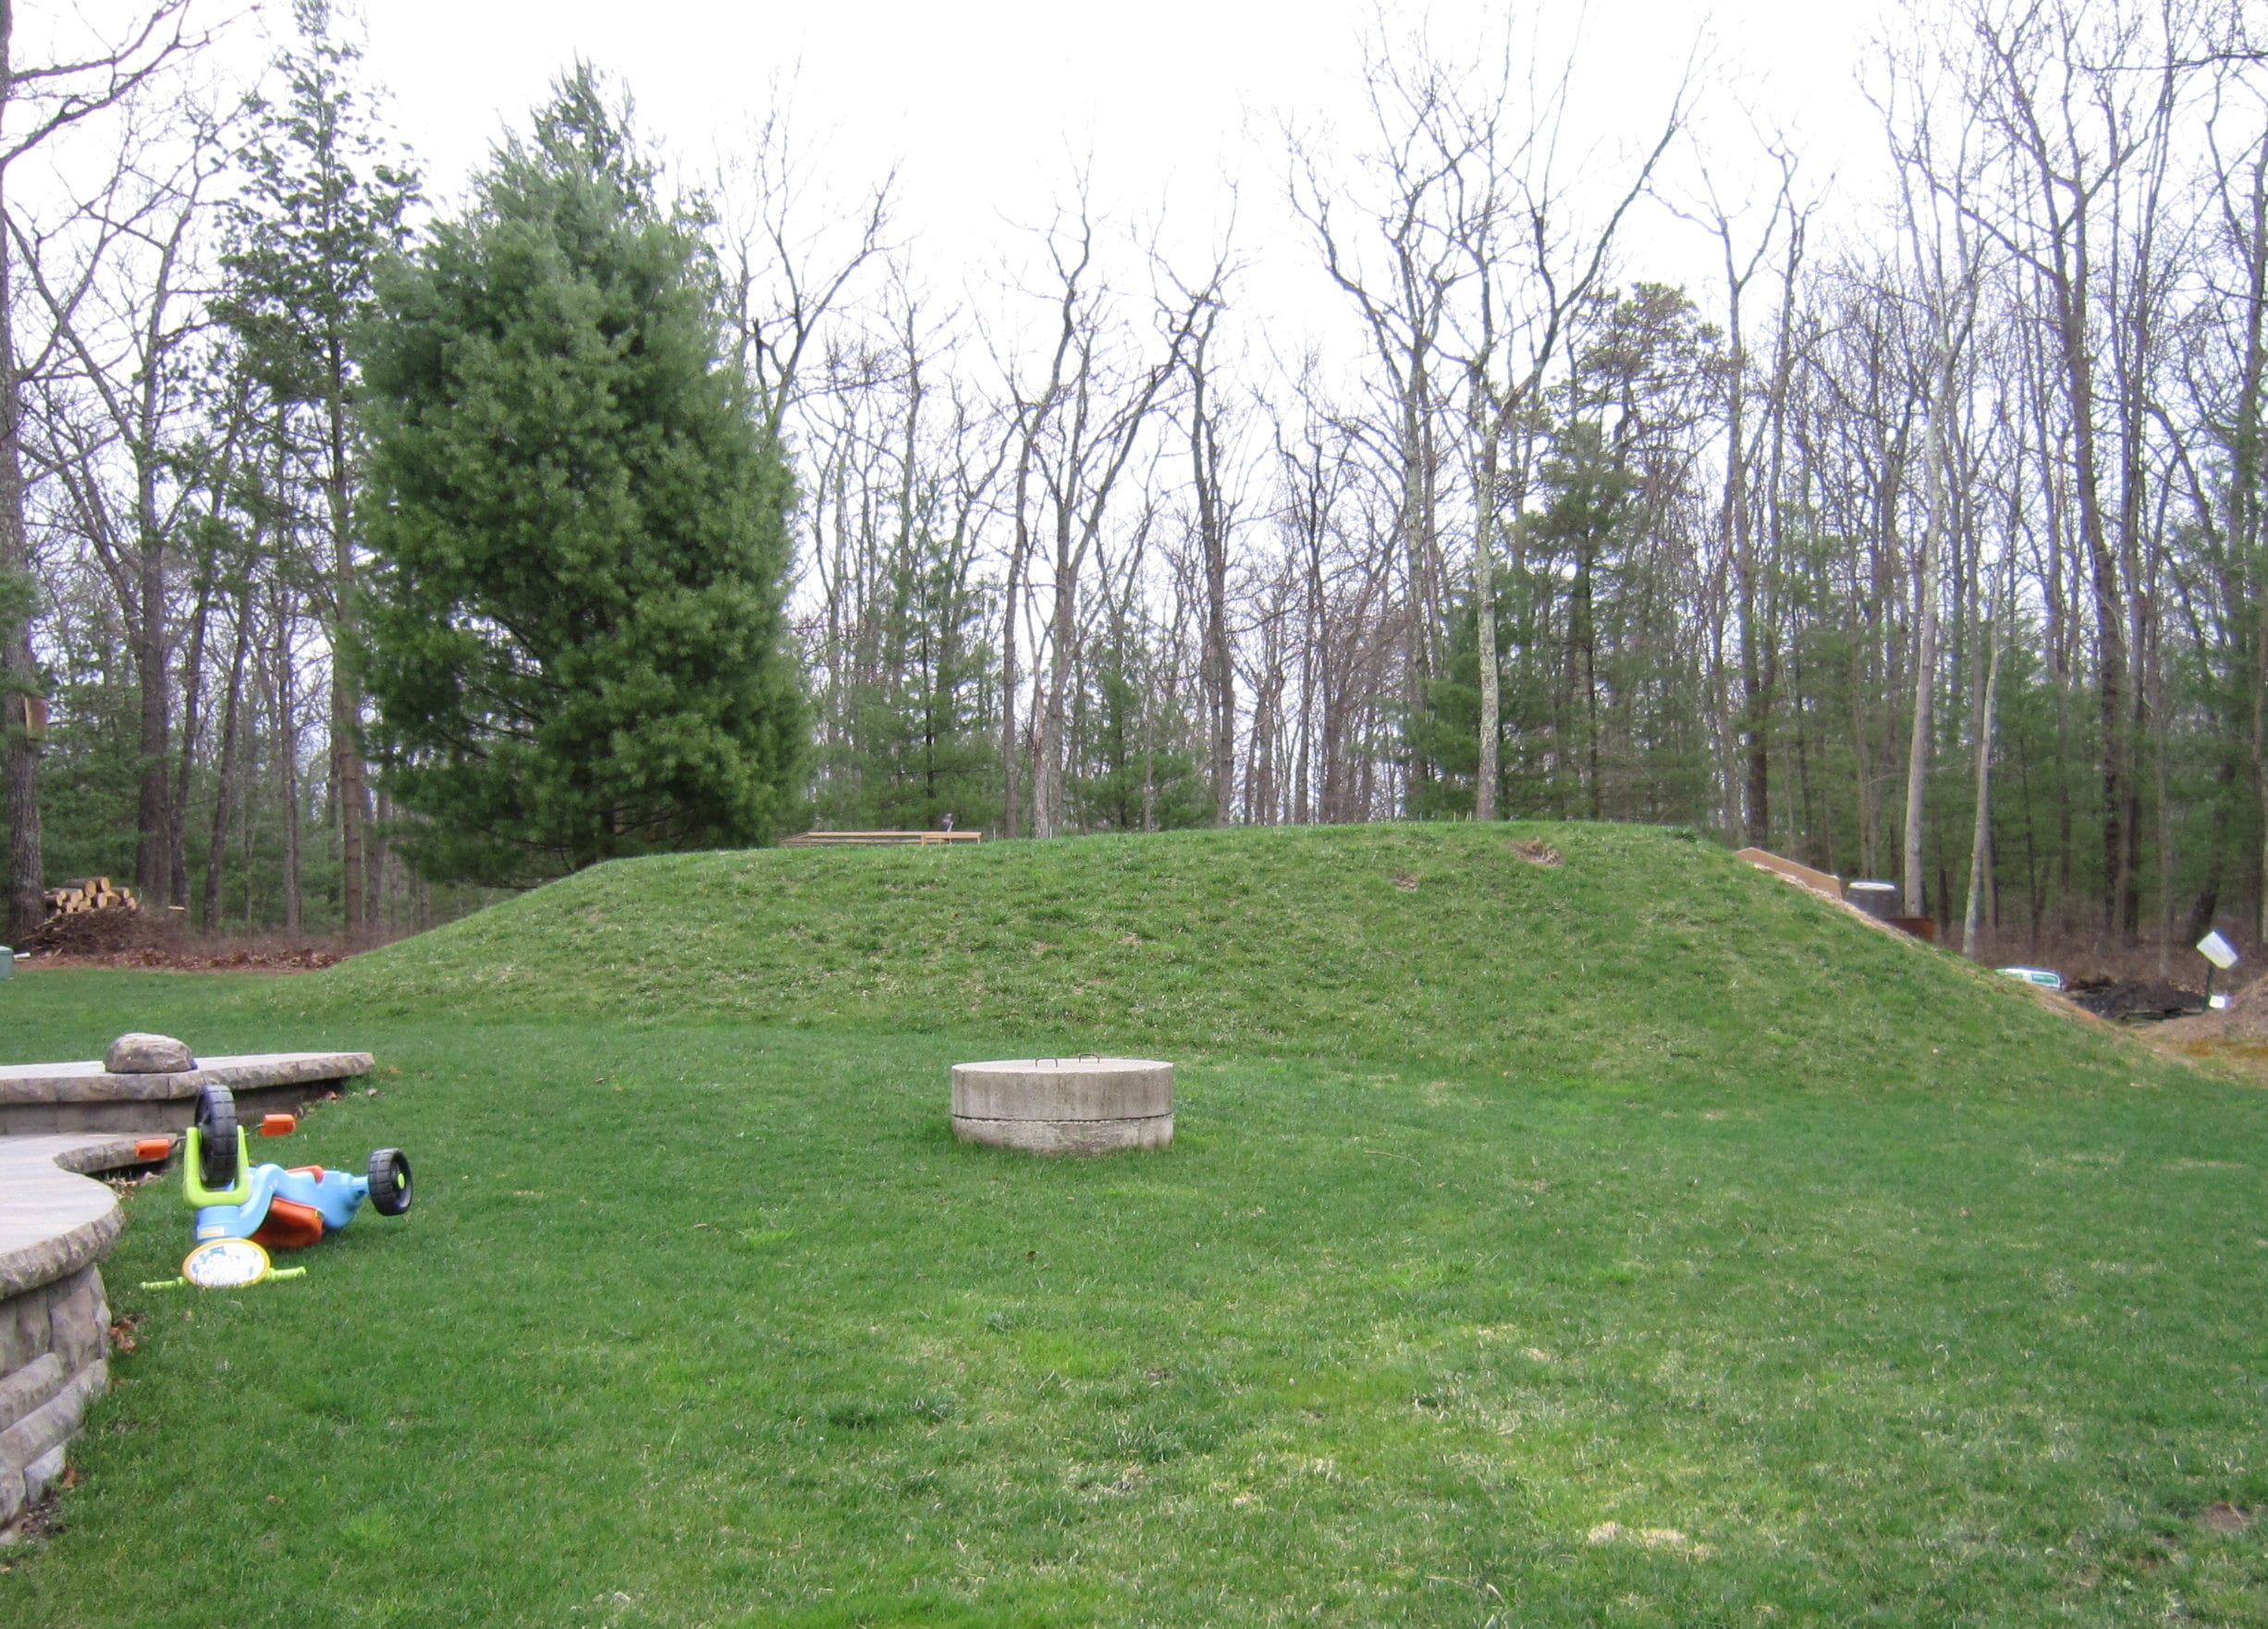 This Article Will Briefly Discuss How To Locate Your Raised Mound Septic System It Was A Very Lazy Sunday Afternoon You Didn T Feel Like Moving From